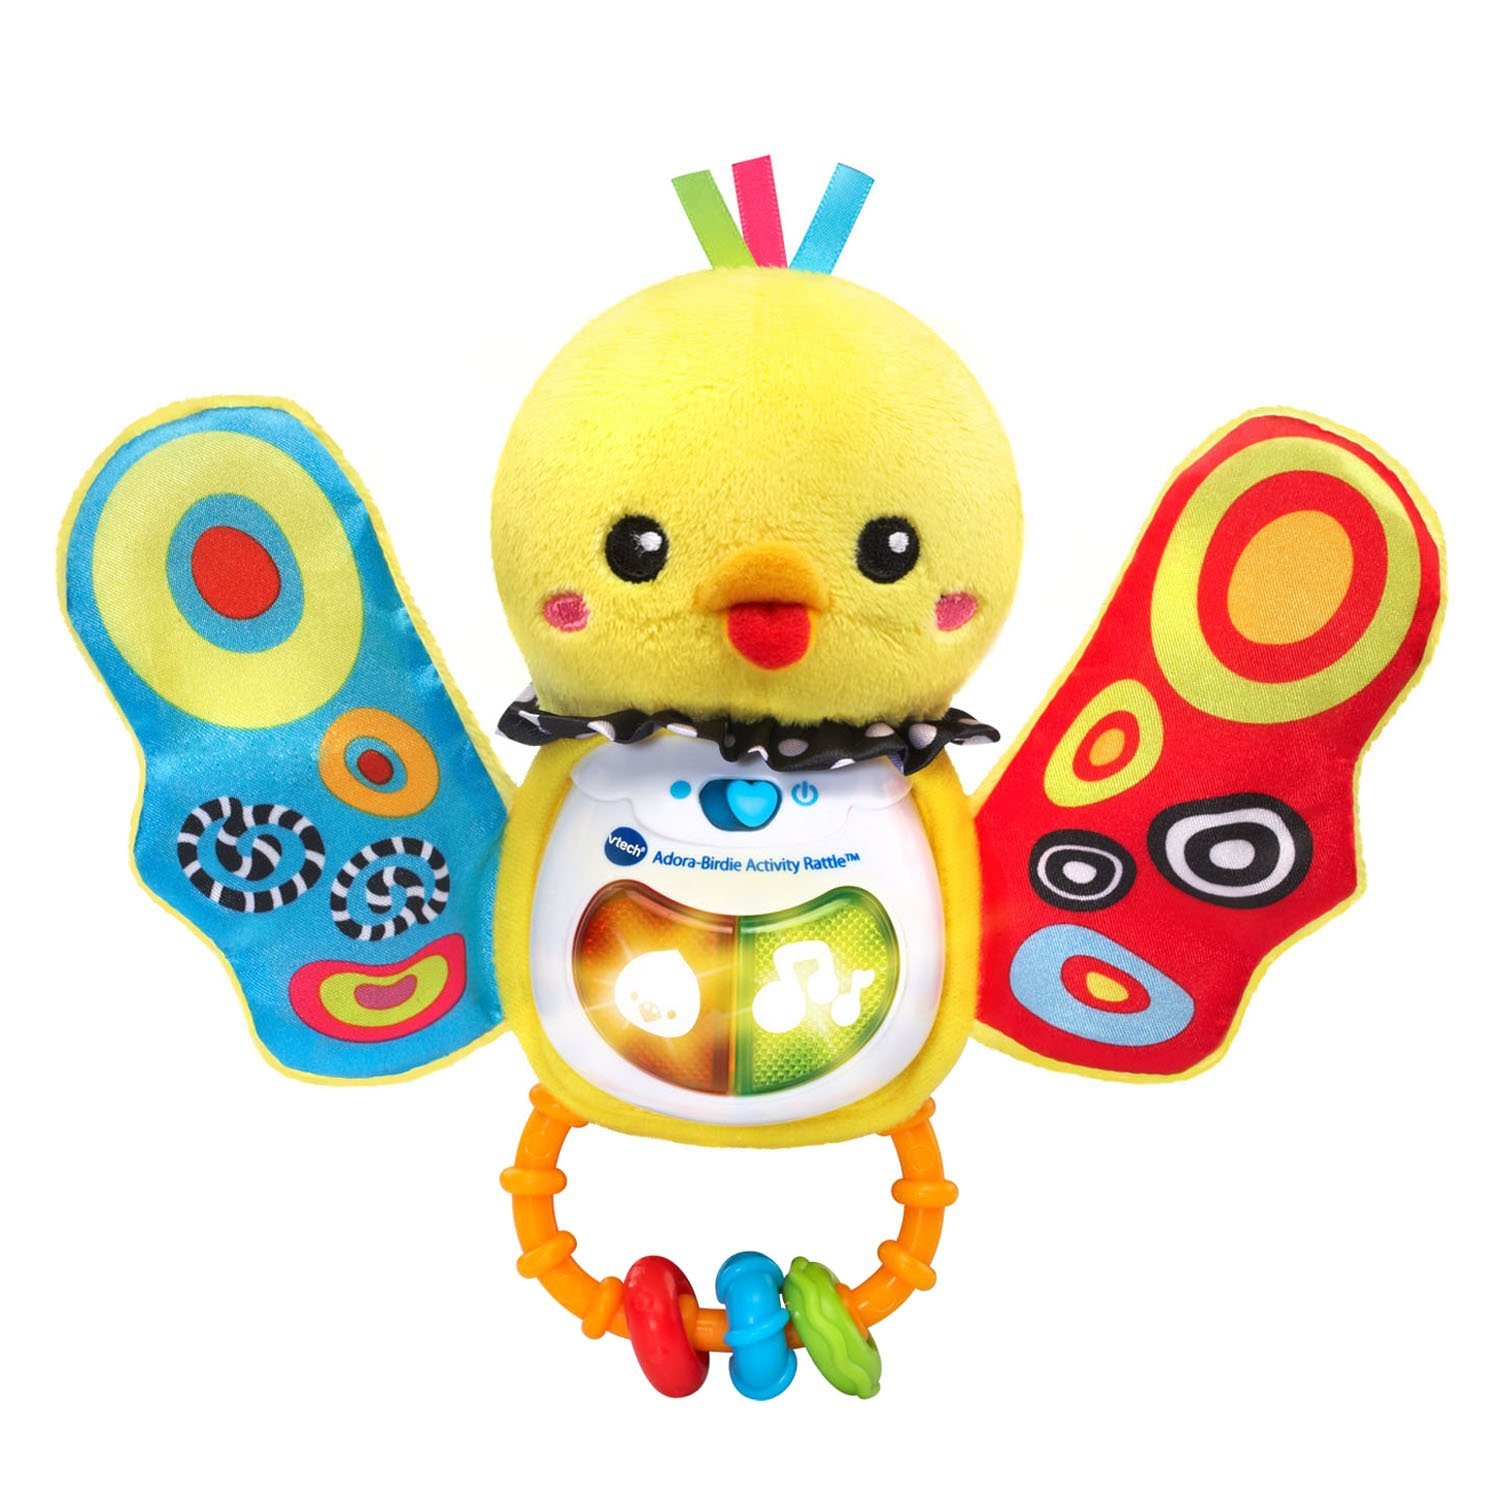 VTech Baby Adora-birdie Activity Rattle V Tech 80-185300